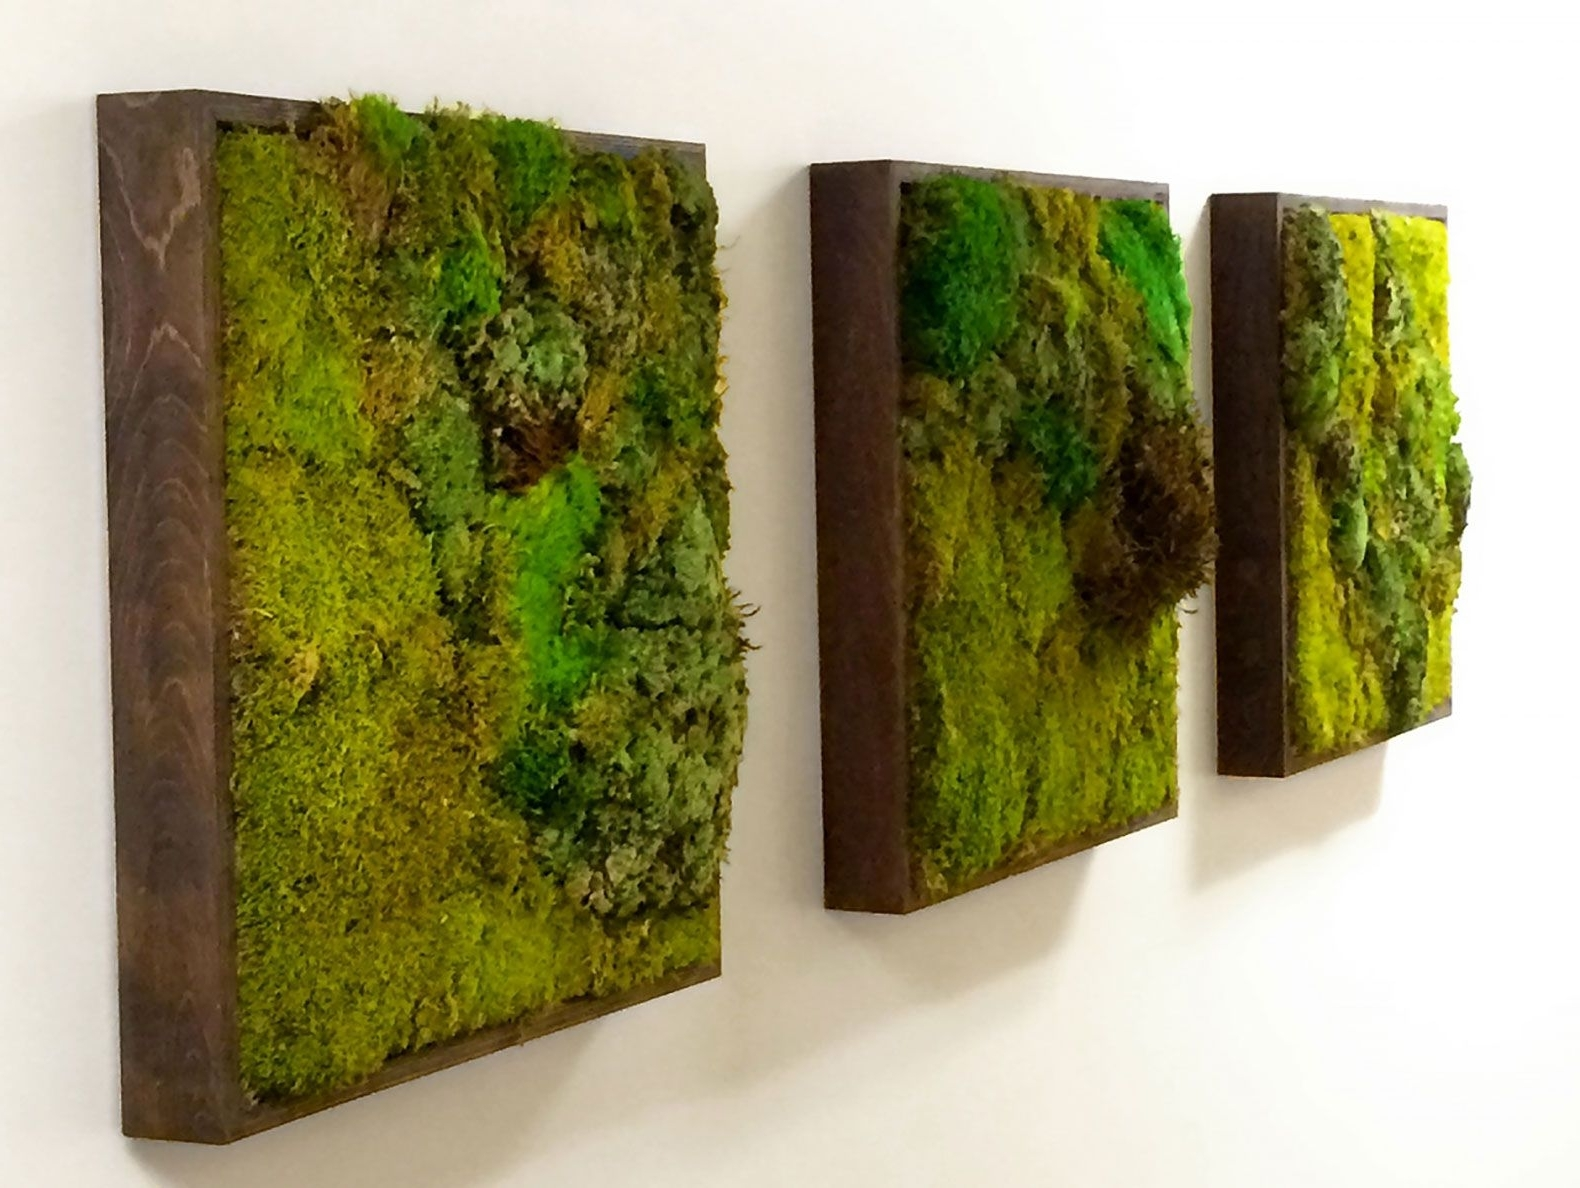 Green Wall Art Within Newest Moss Walls: The Newest Trend In Biophilic Interiors (View 4 of 20)